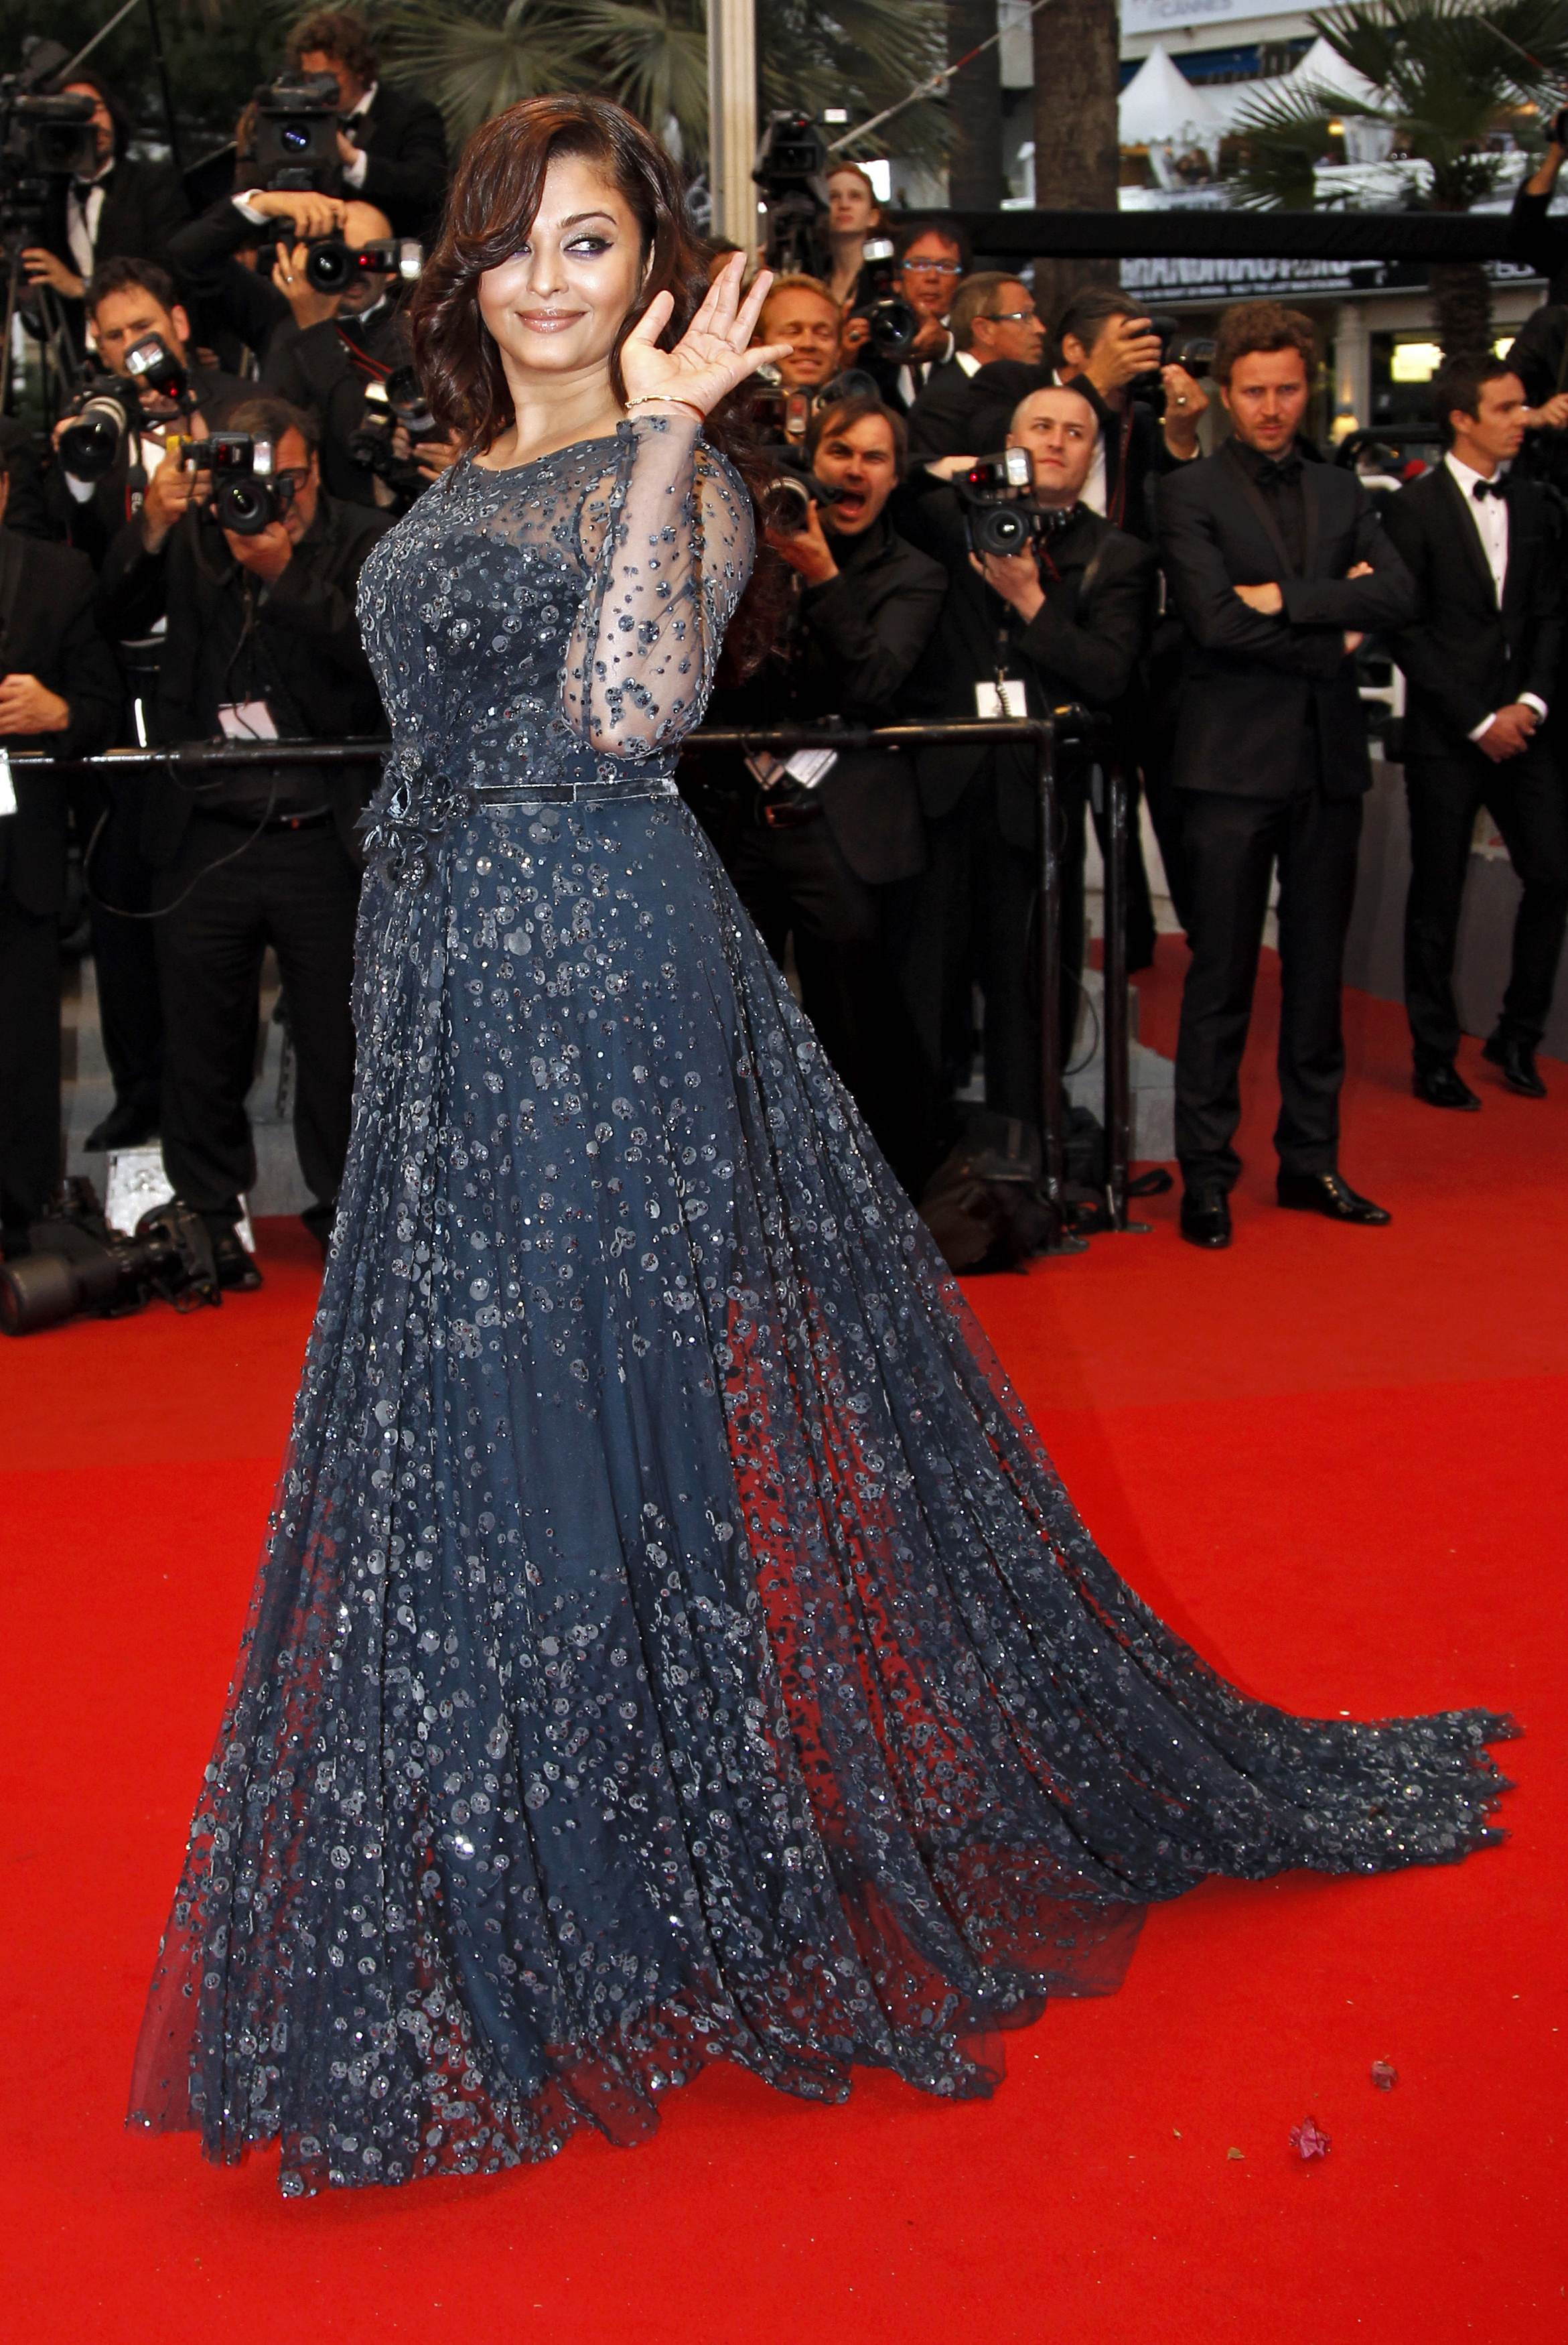 Actress Rai arrives on the red carpet ahead of the screening of the film Cosmopolis in competition at the 65th Cannes Film Festival